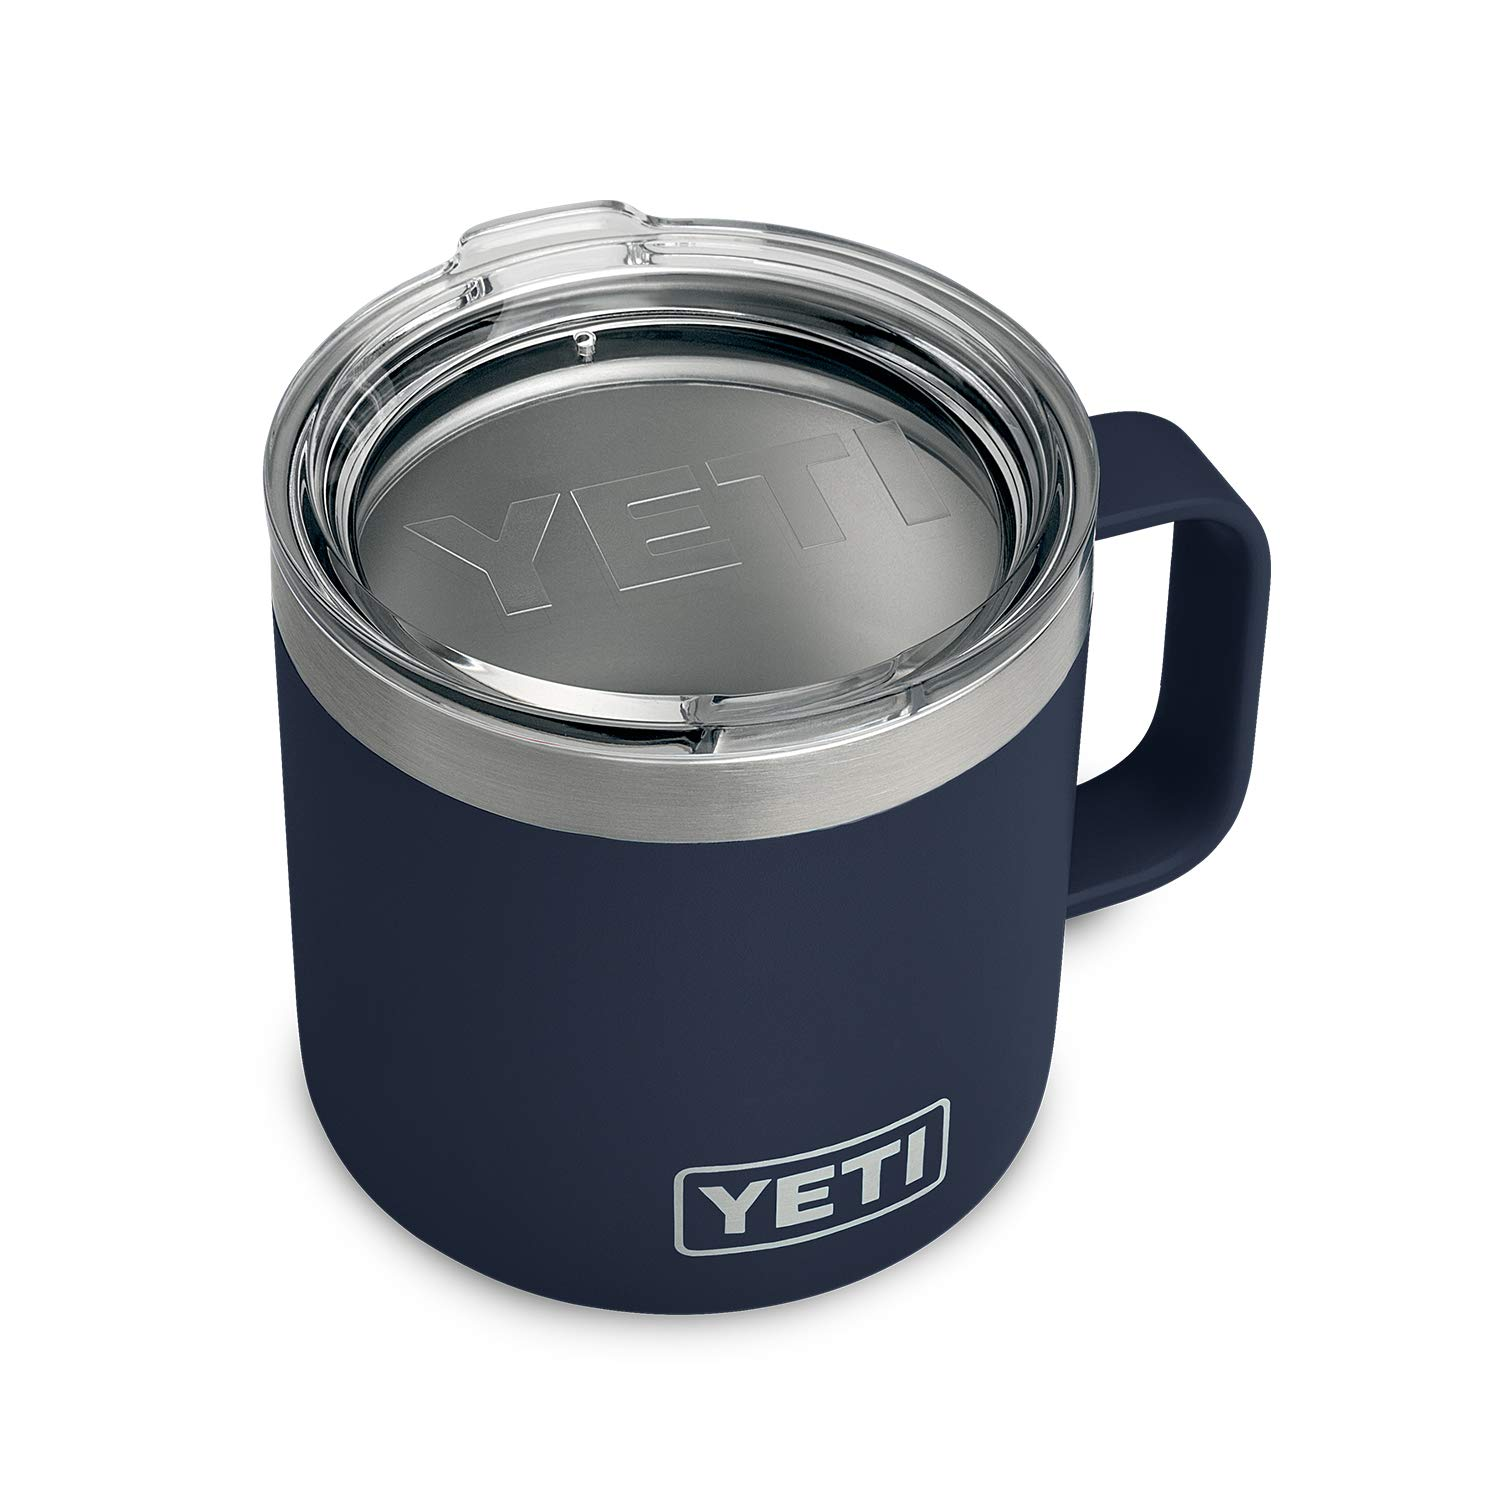 Navy Blue Yeti Insulated Mug